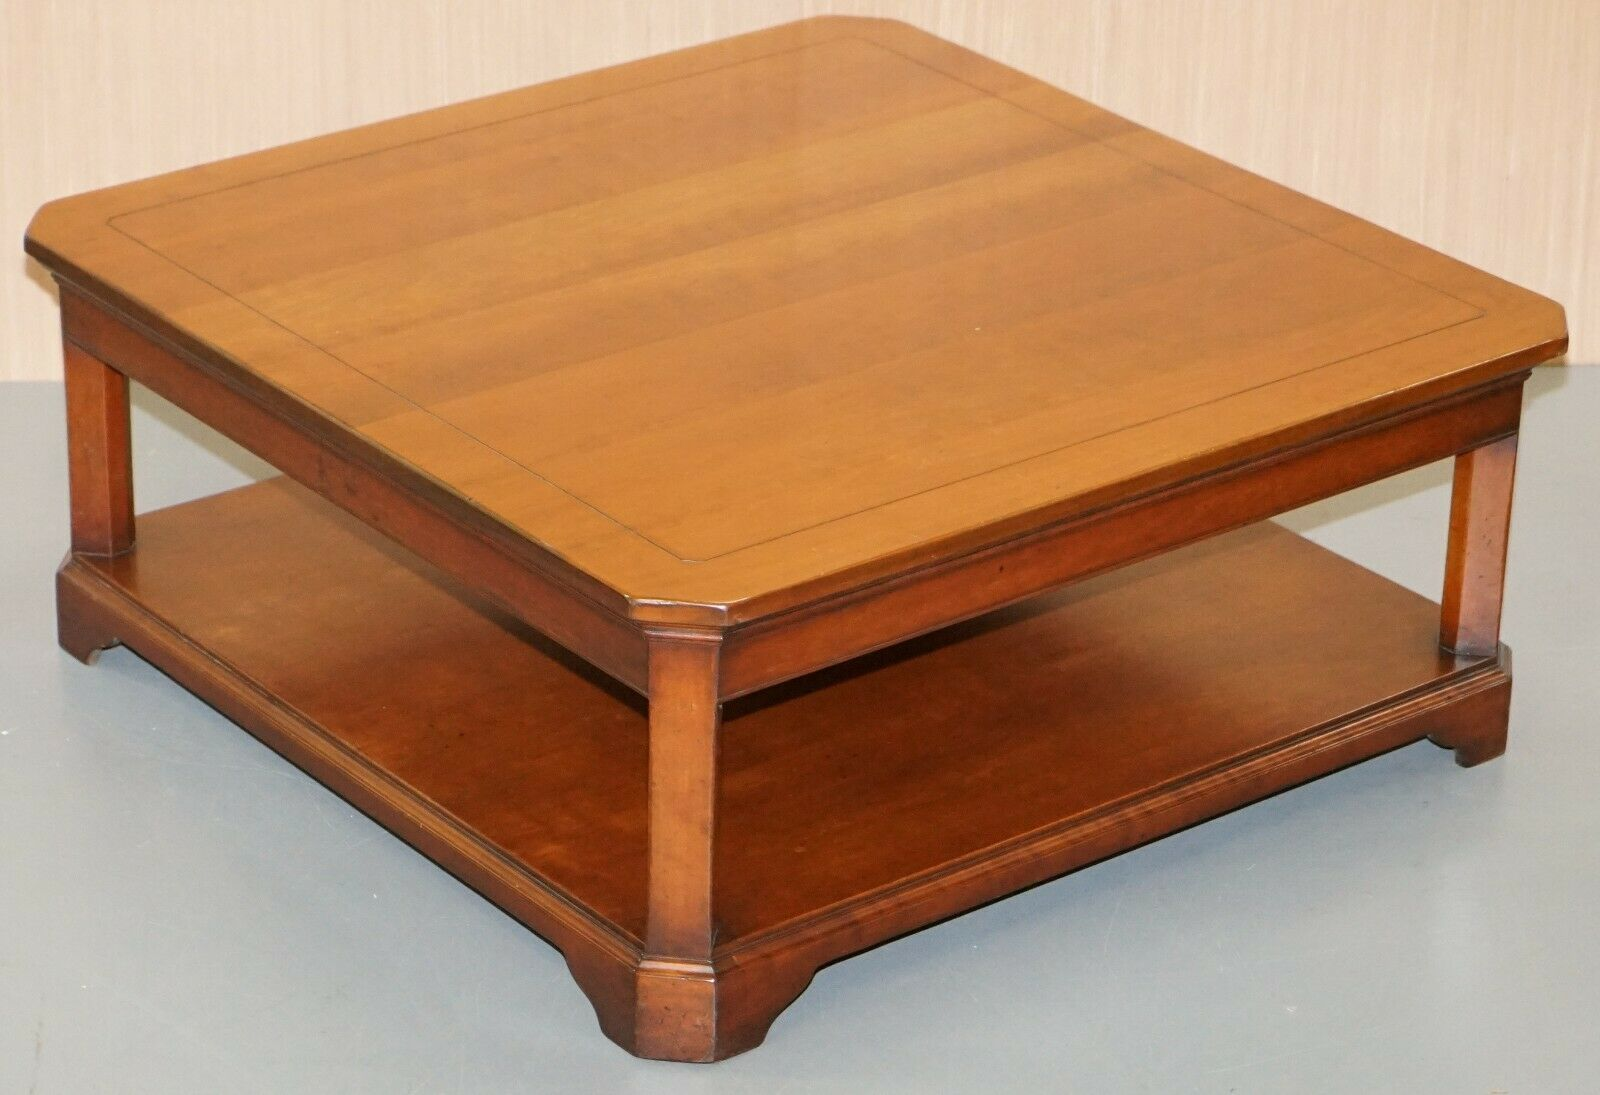 Picture of: Stunning Harrods London Grange Paris Solid Cherry Wood Coffee Table Square Vinterior